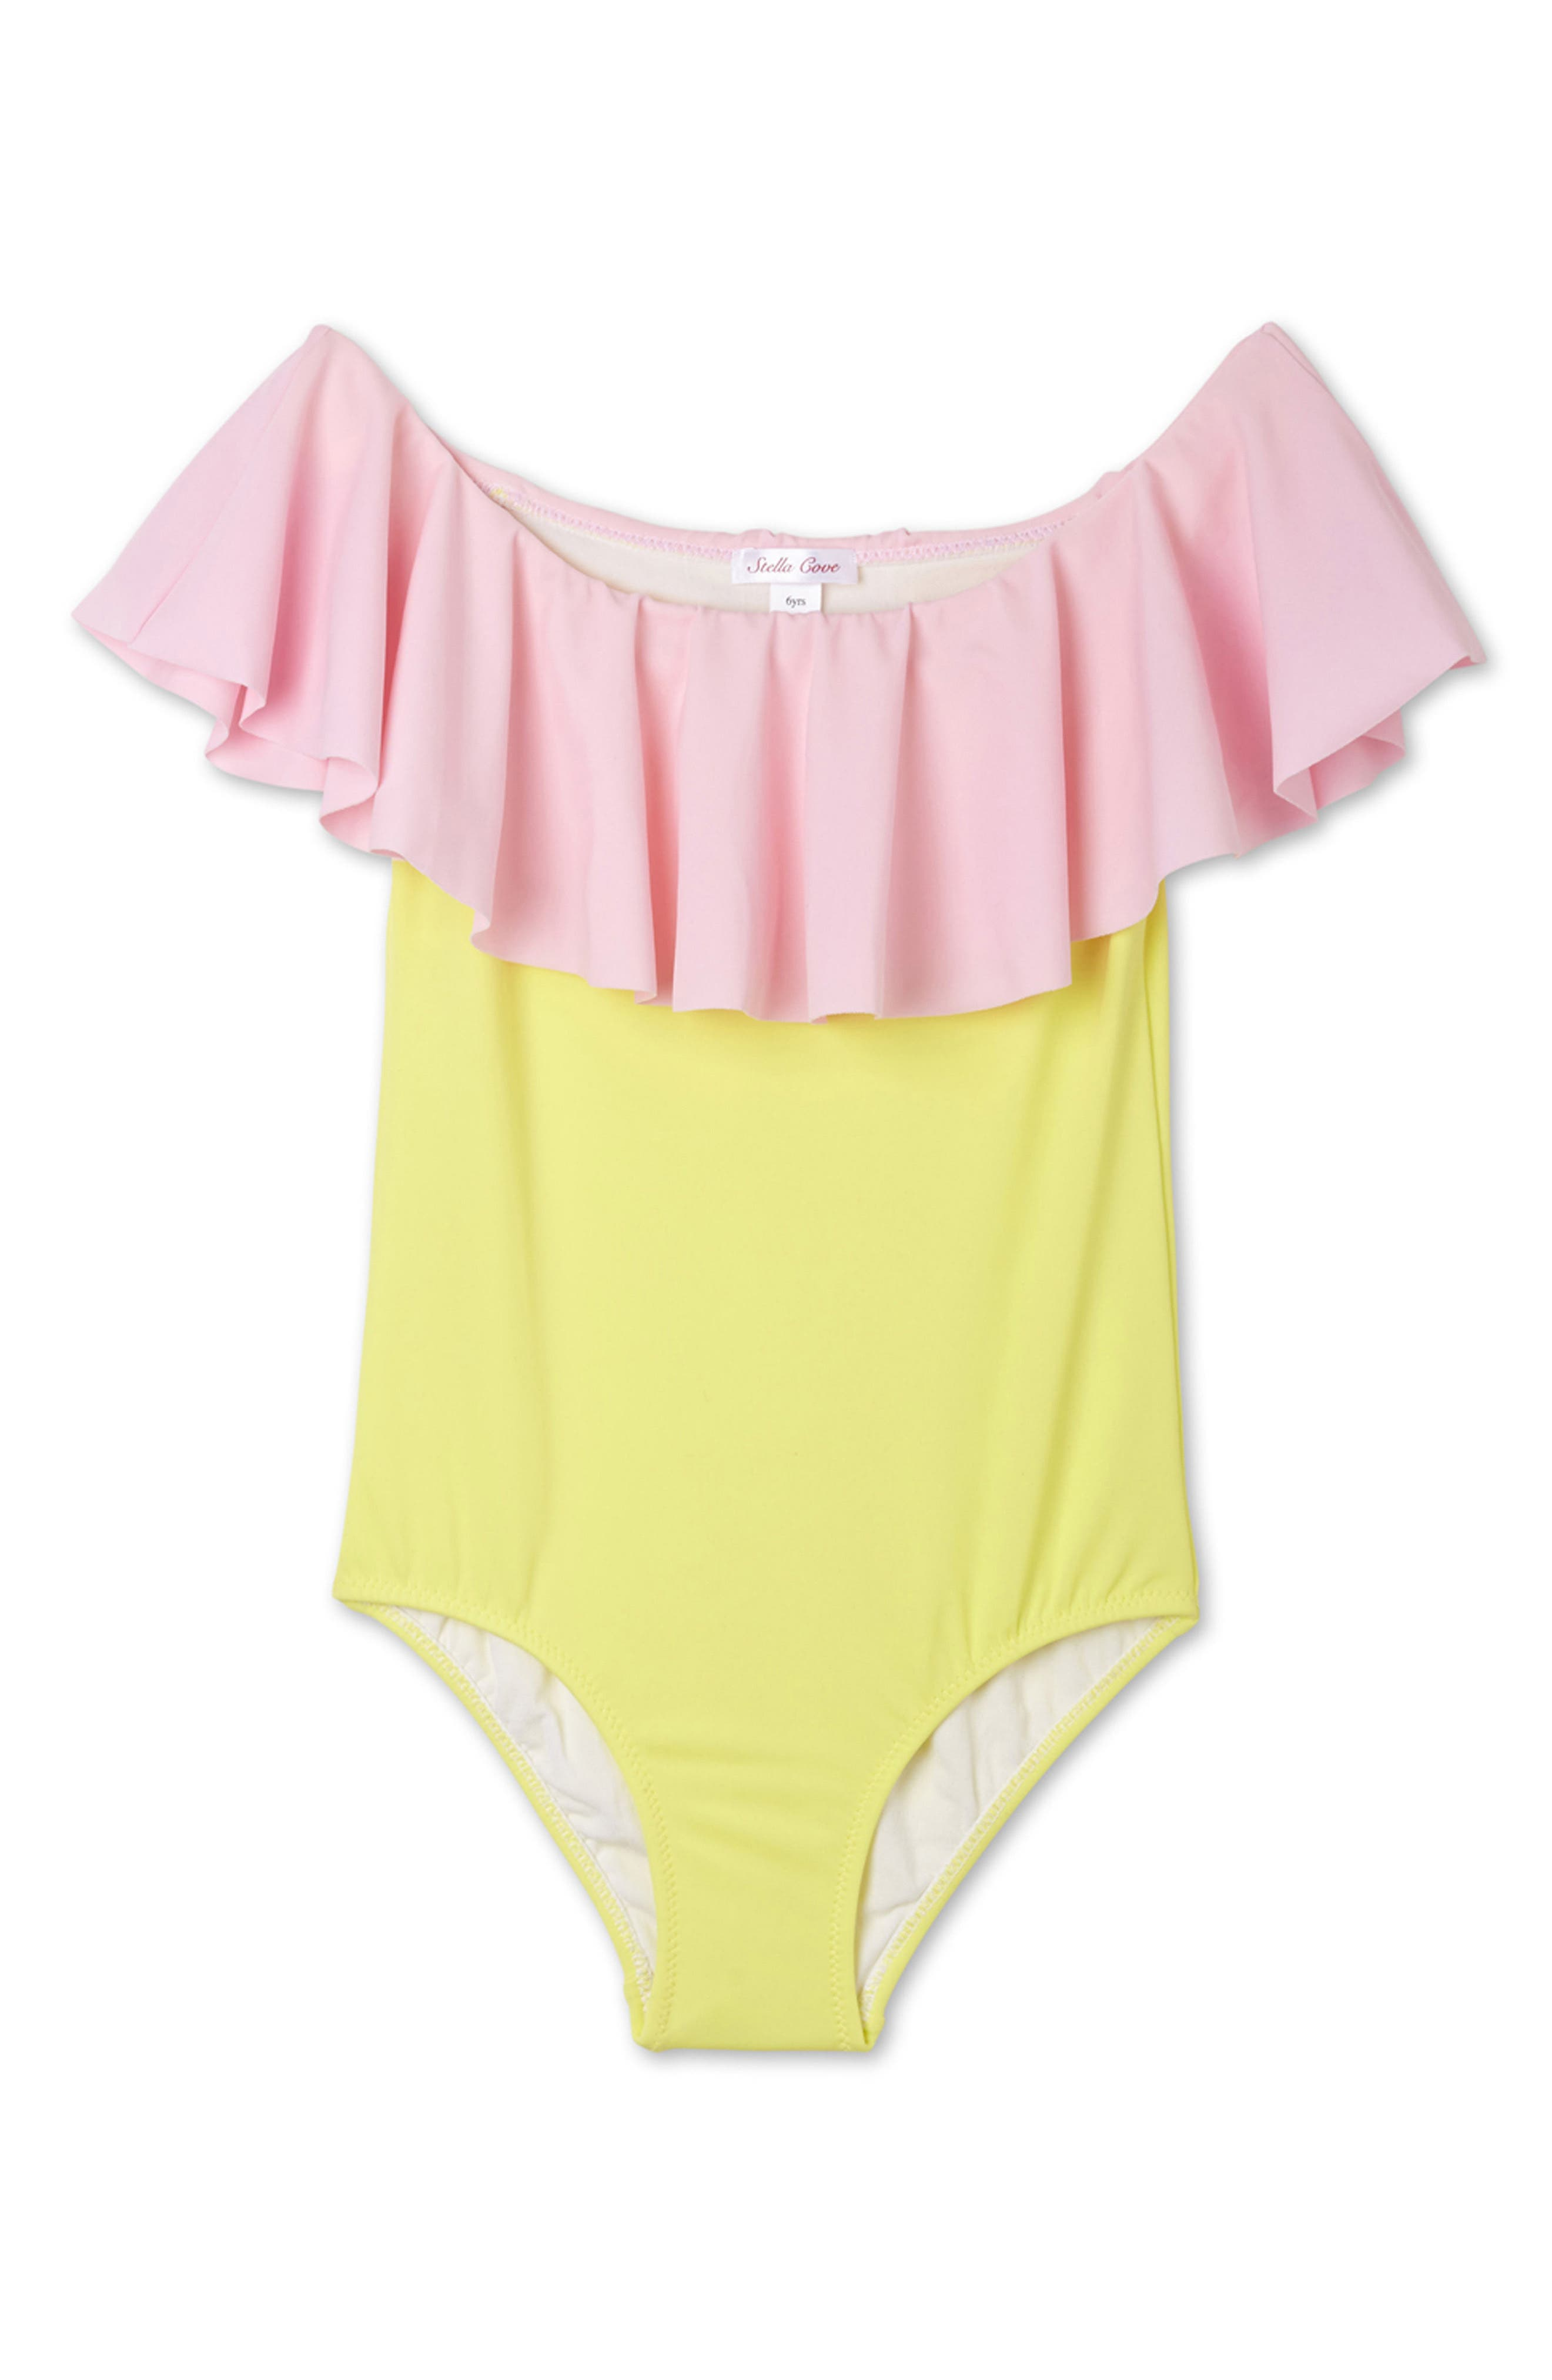 Stella Cove Ruffle One-Piece Swimsuit (Toddler Girls & Little Girls)